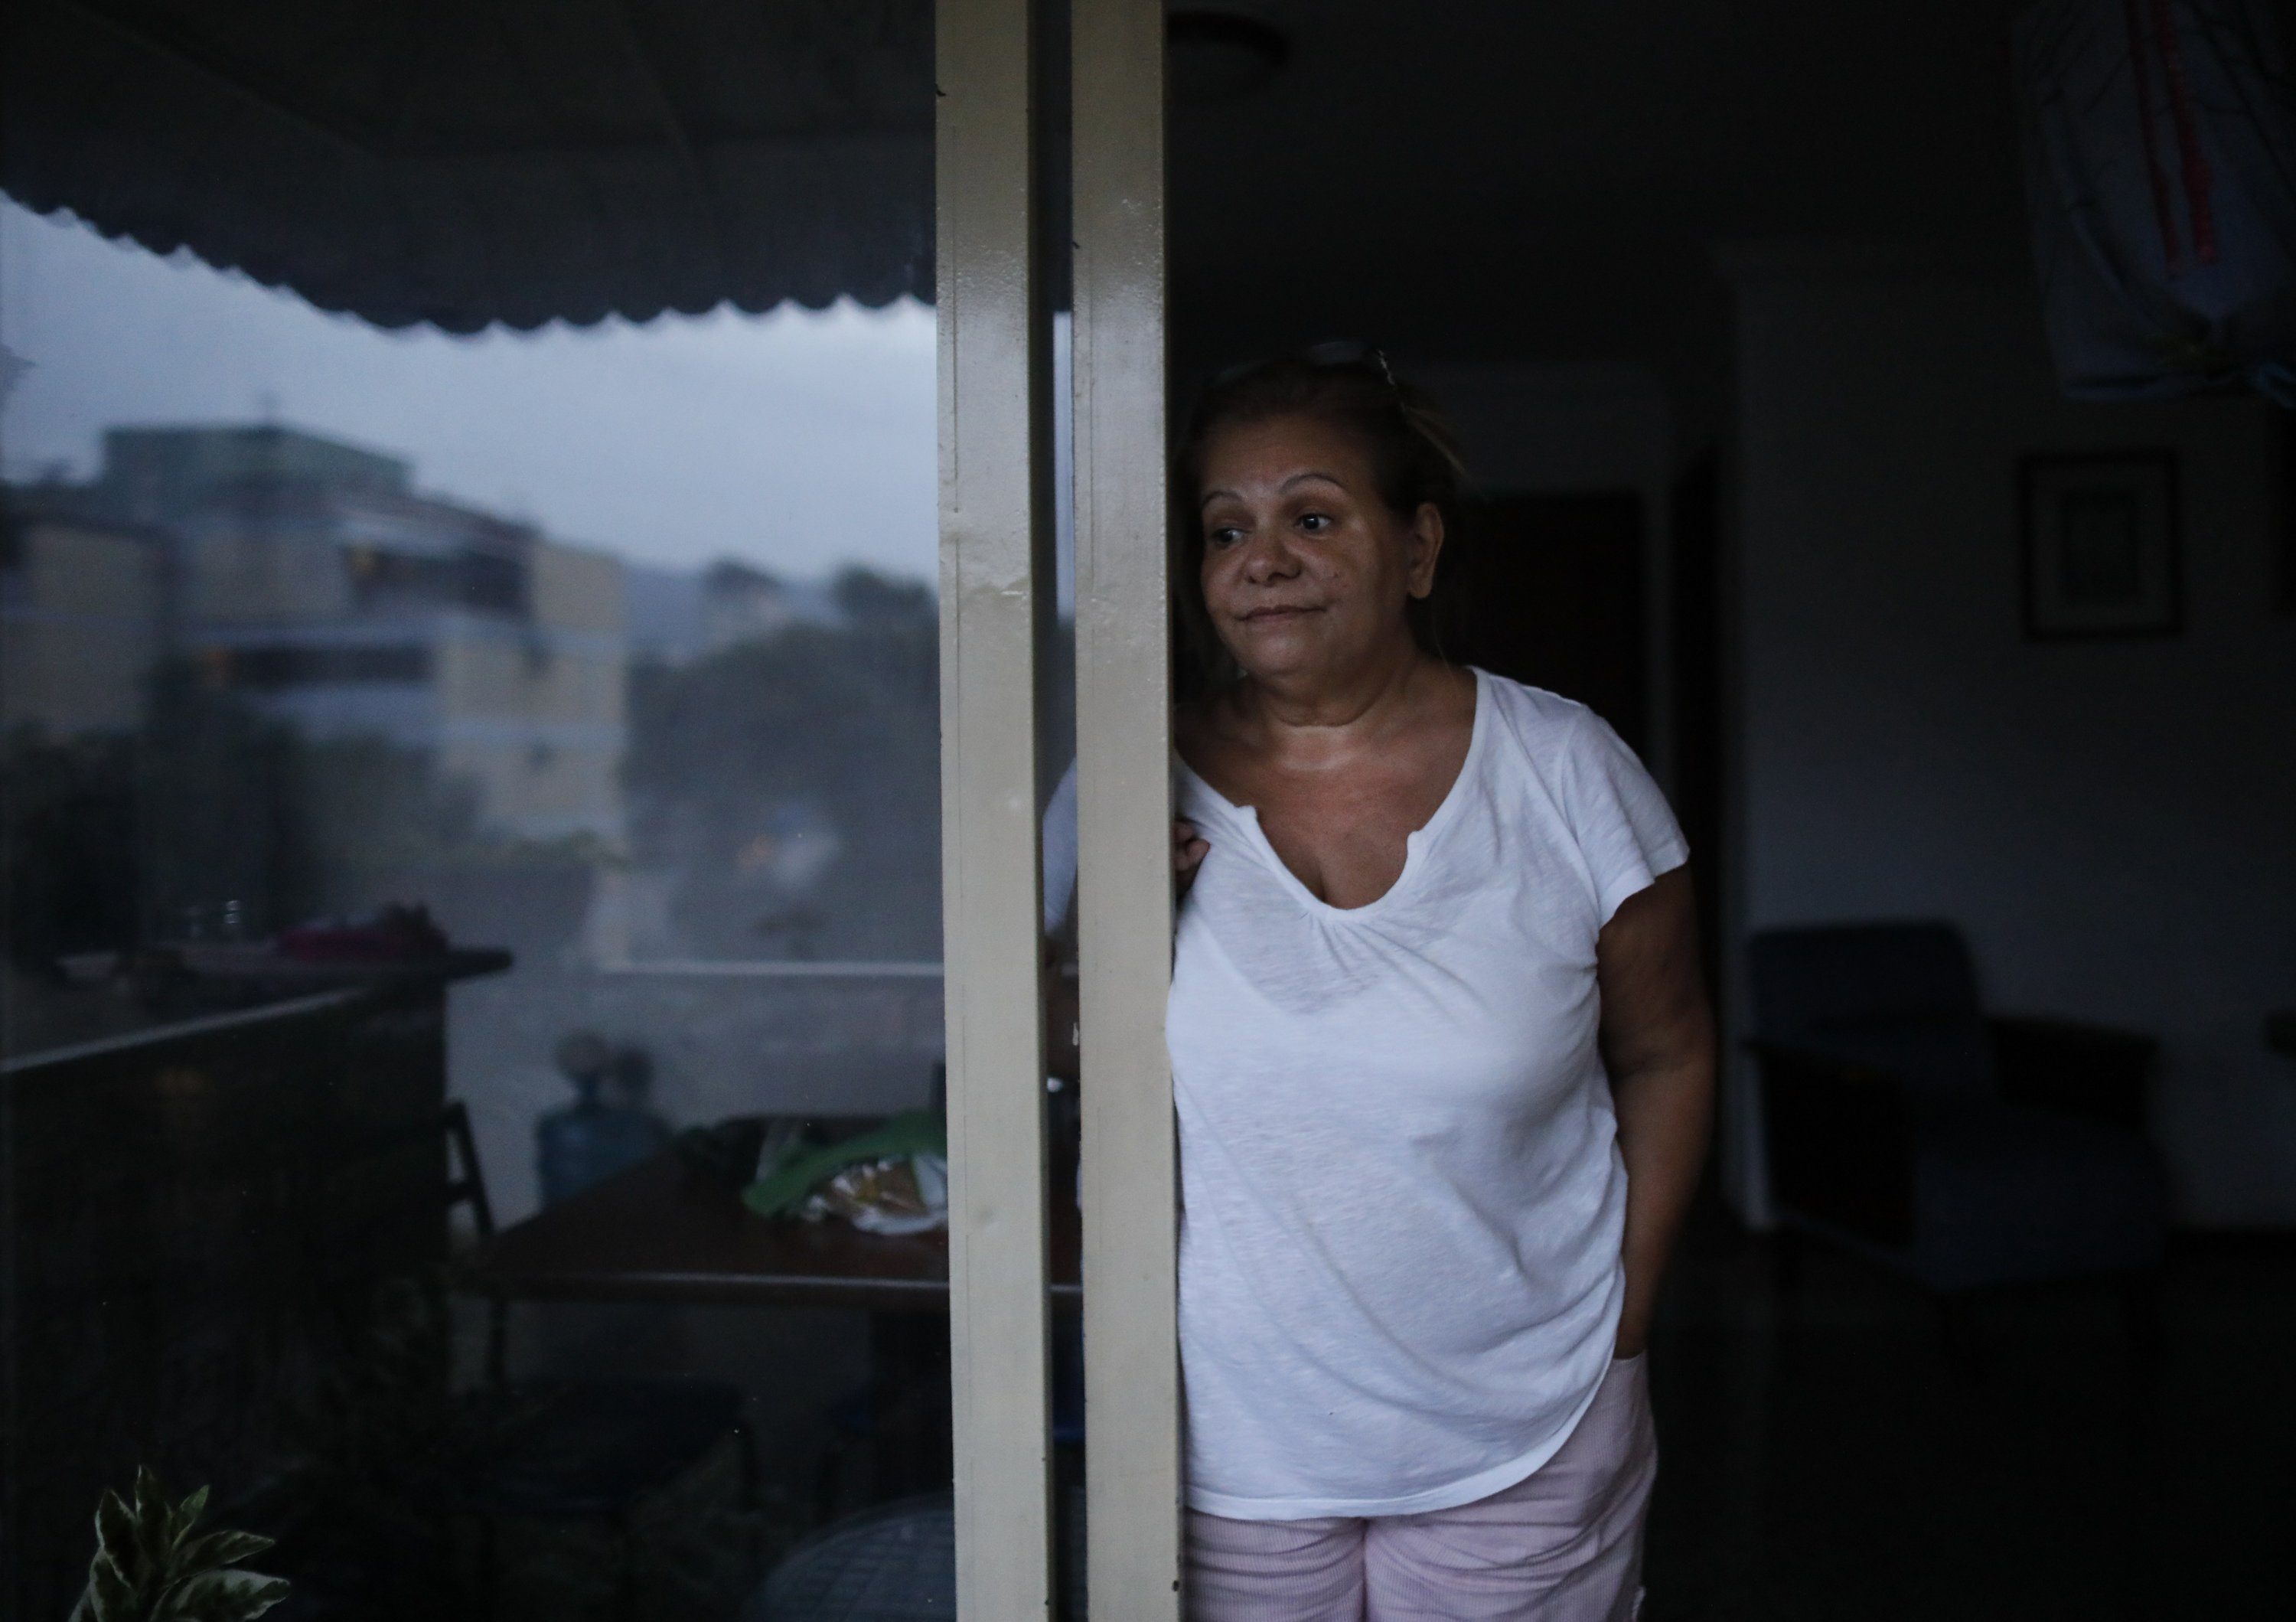 In prized Venezuelan building, a long wait for light